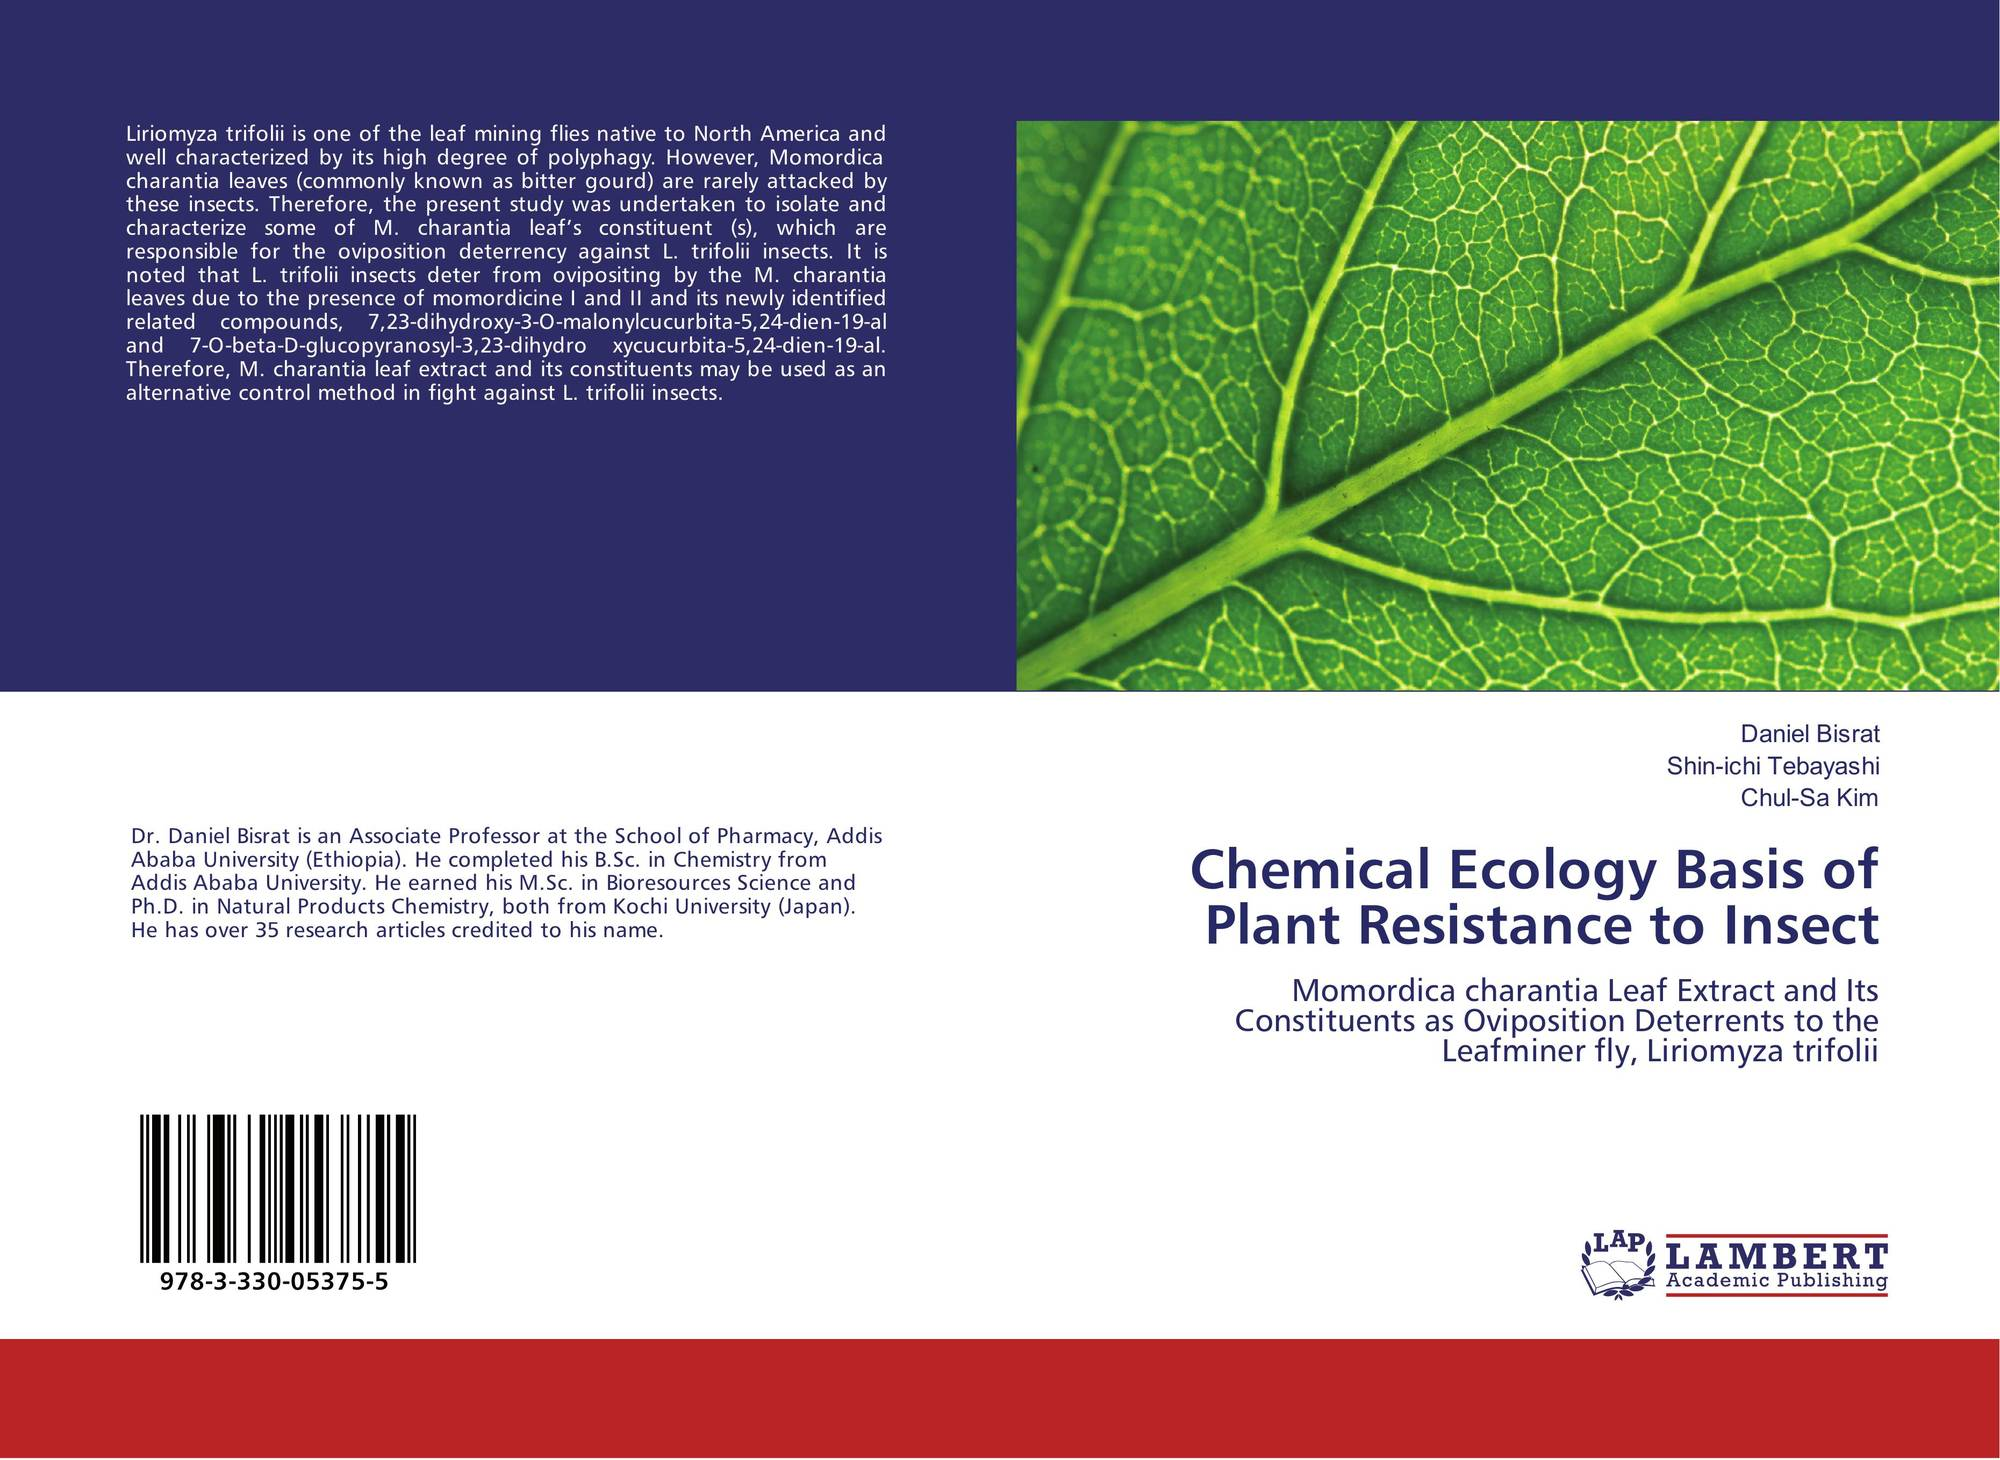 Chemical Ecology Basis of Plant Resistance to Insect, 978-3-330